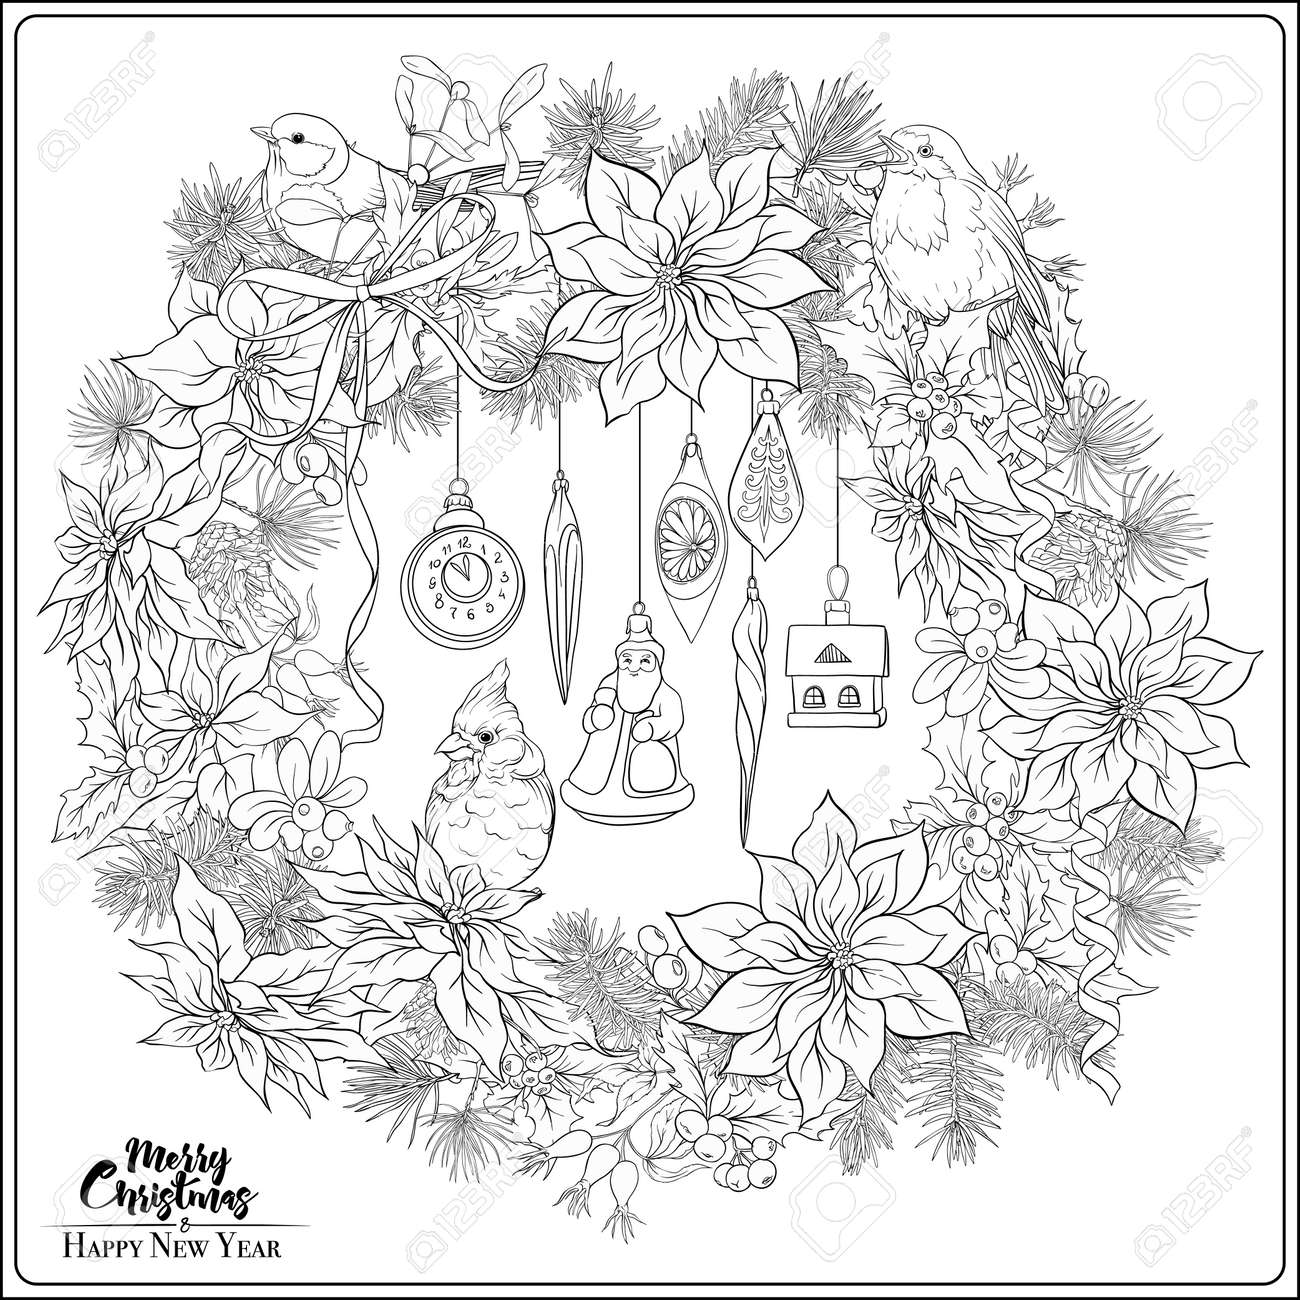 Free Printable Poinsettia Coloring Pages For Kids | 1300x1300